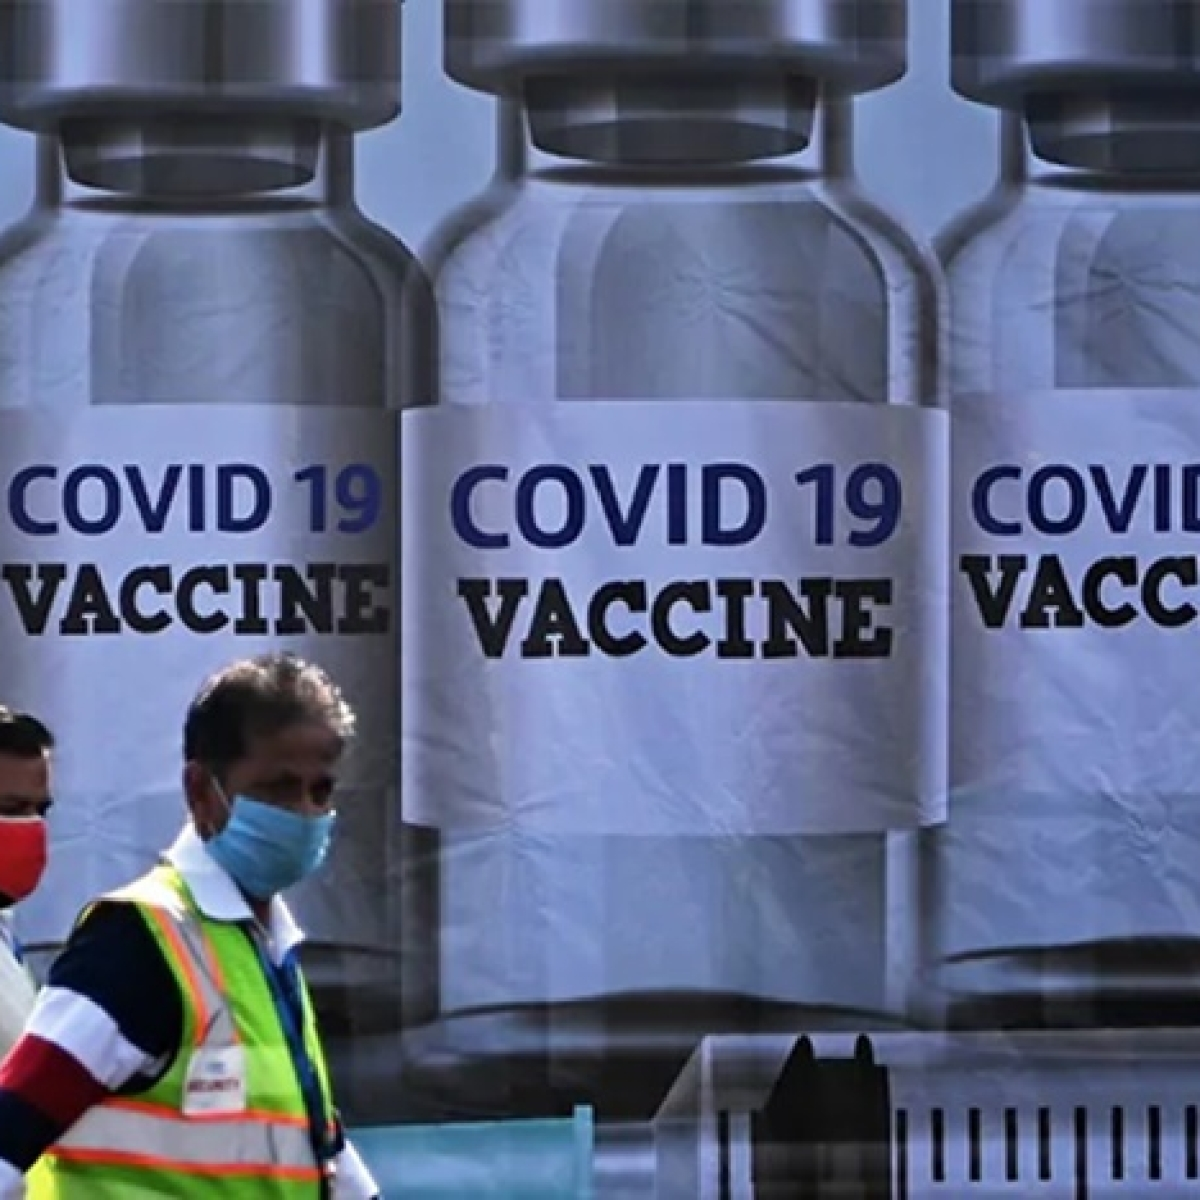 Coronavirus in India: Vaccination drive to kick off on Jan 16; healthcare and frontline workers first in line